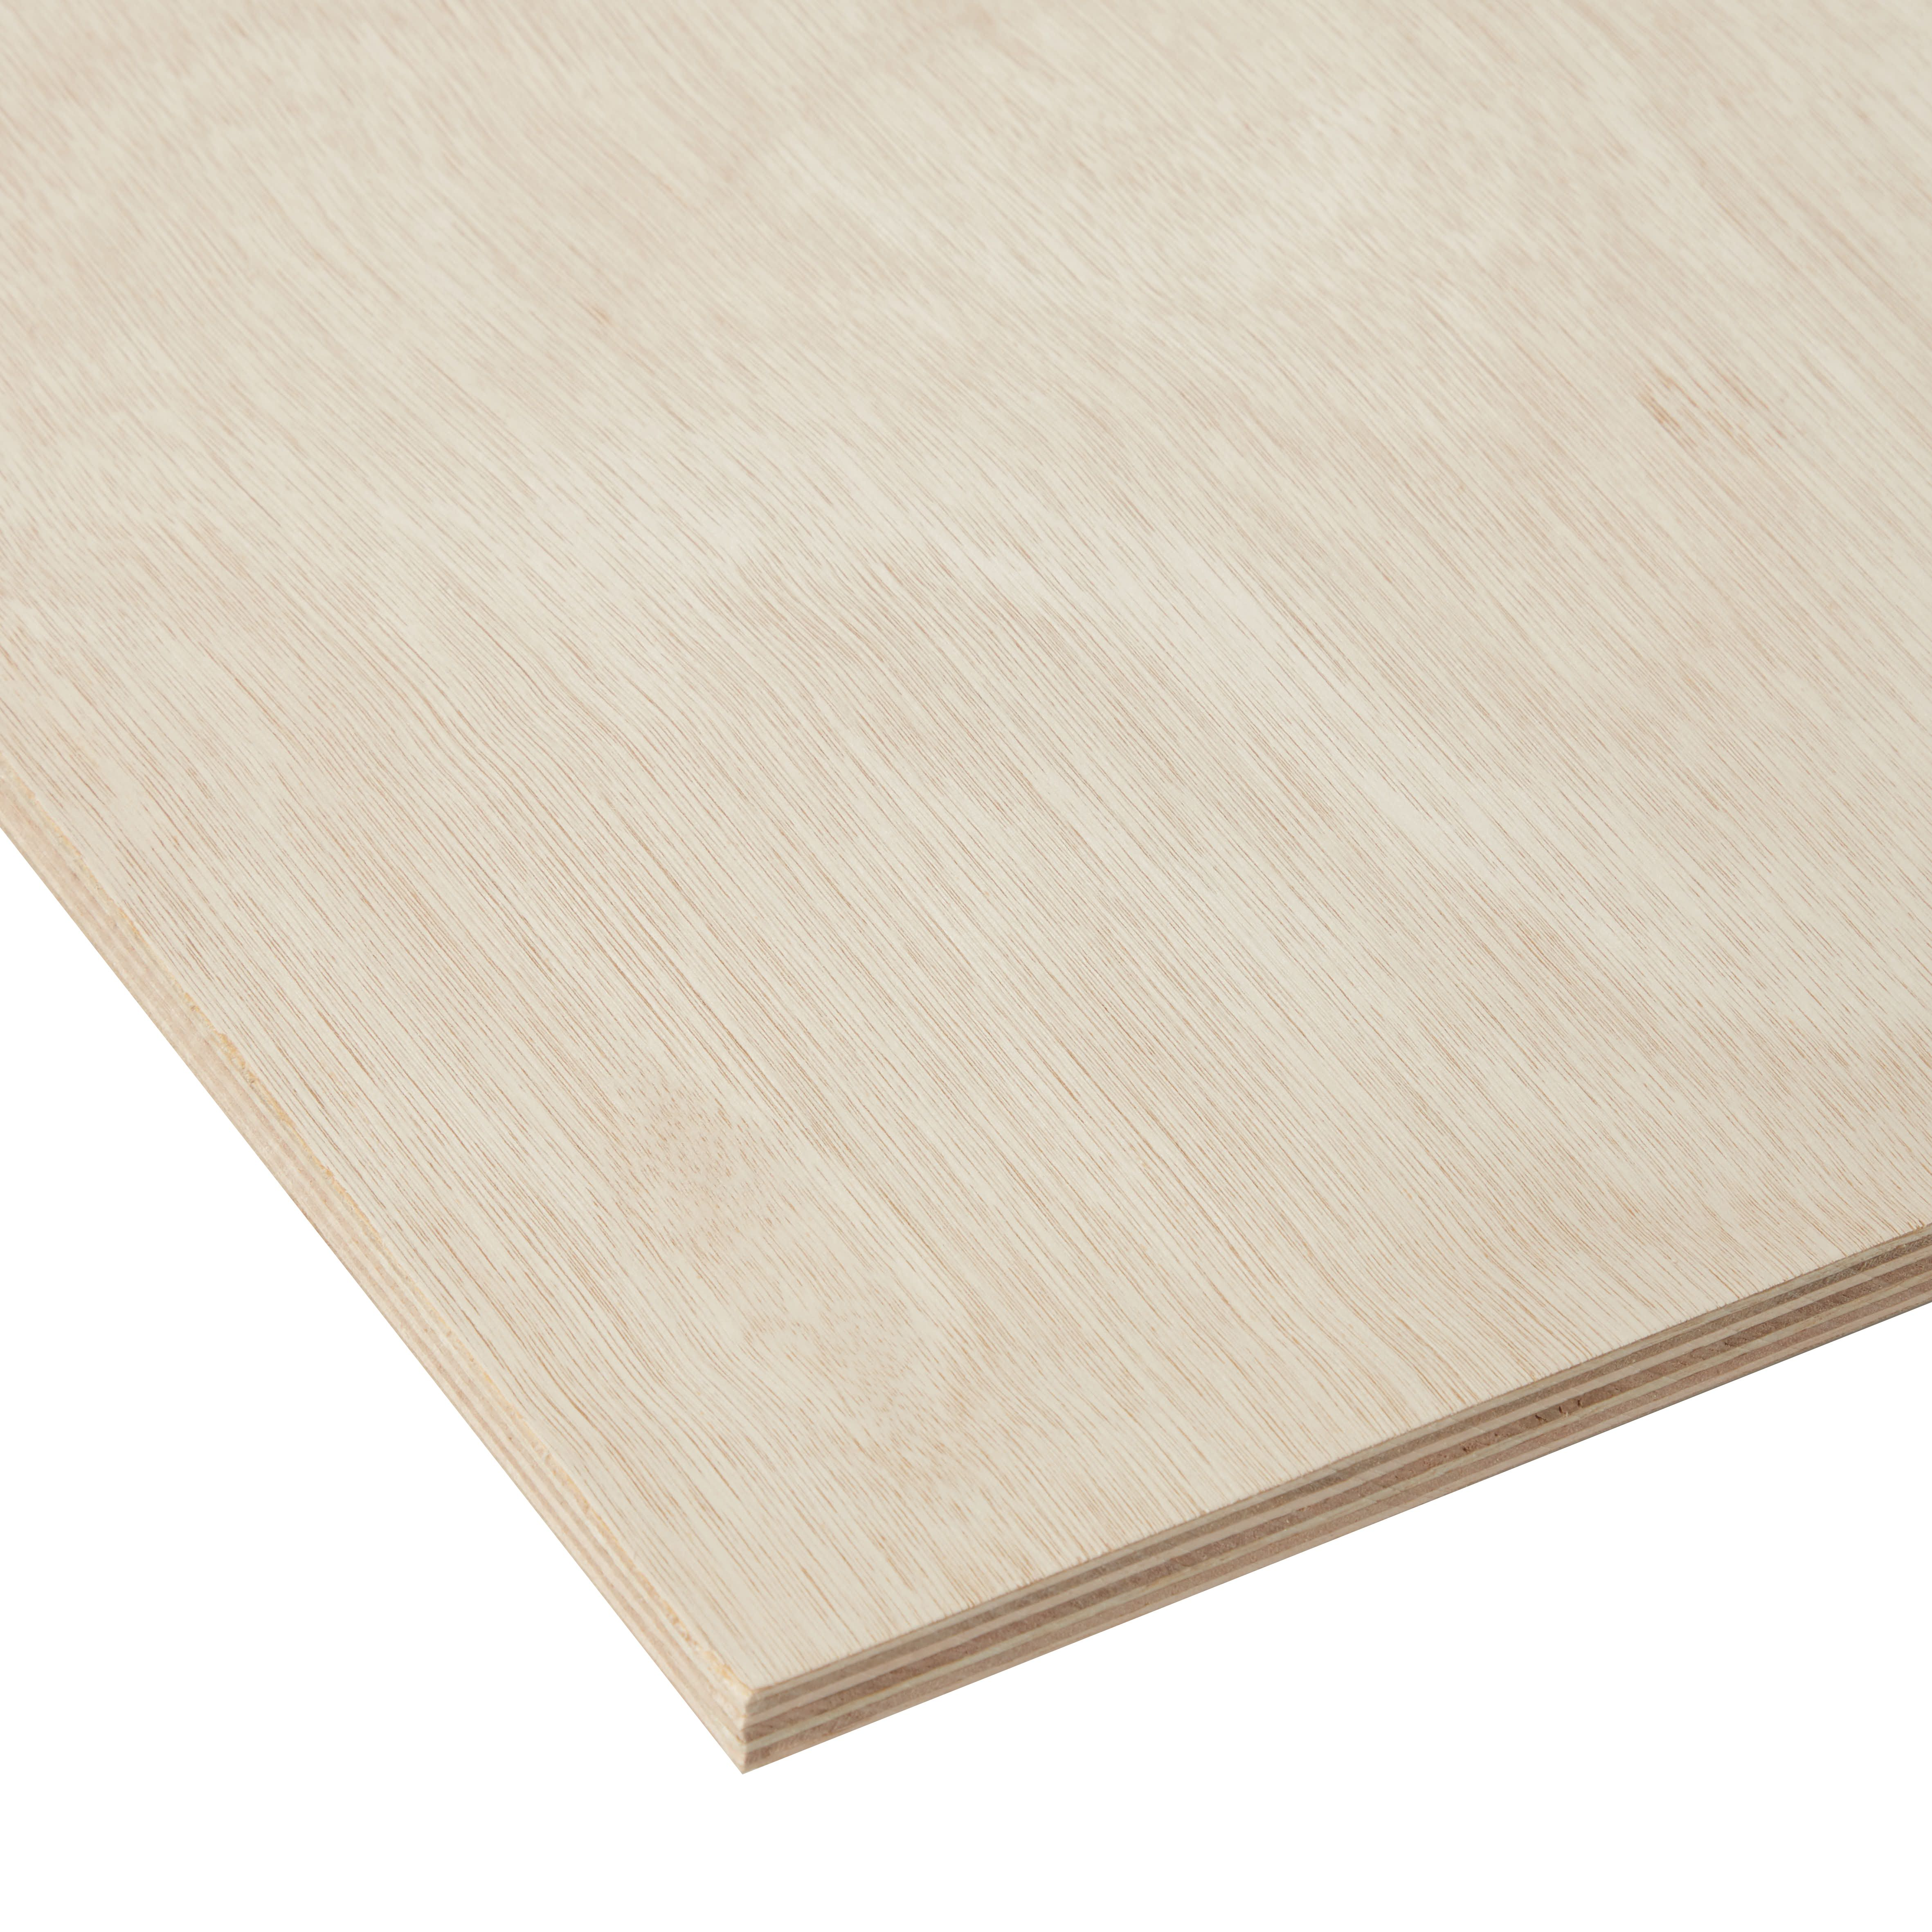 Plywood Sheet Th 12mm W 1220mm L 2440mm Departments